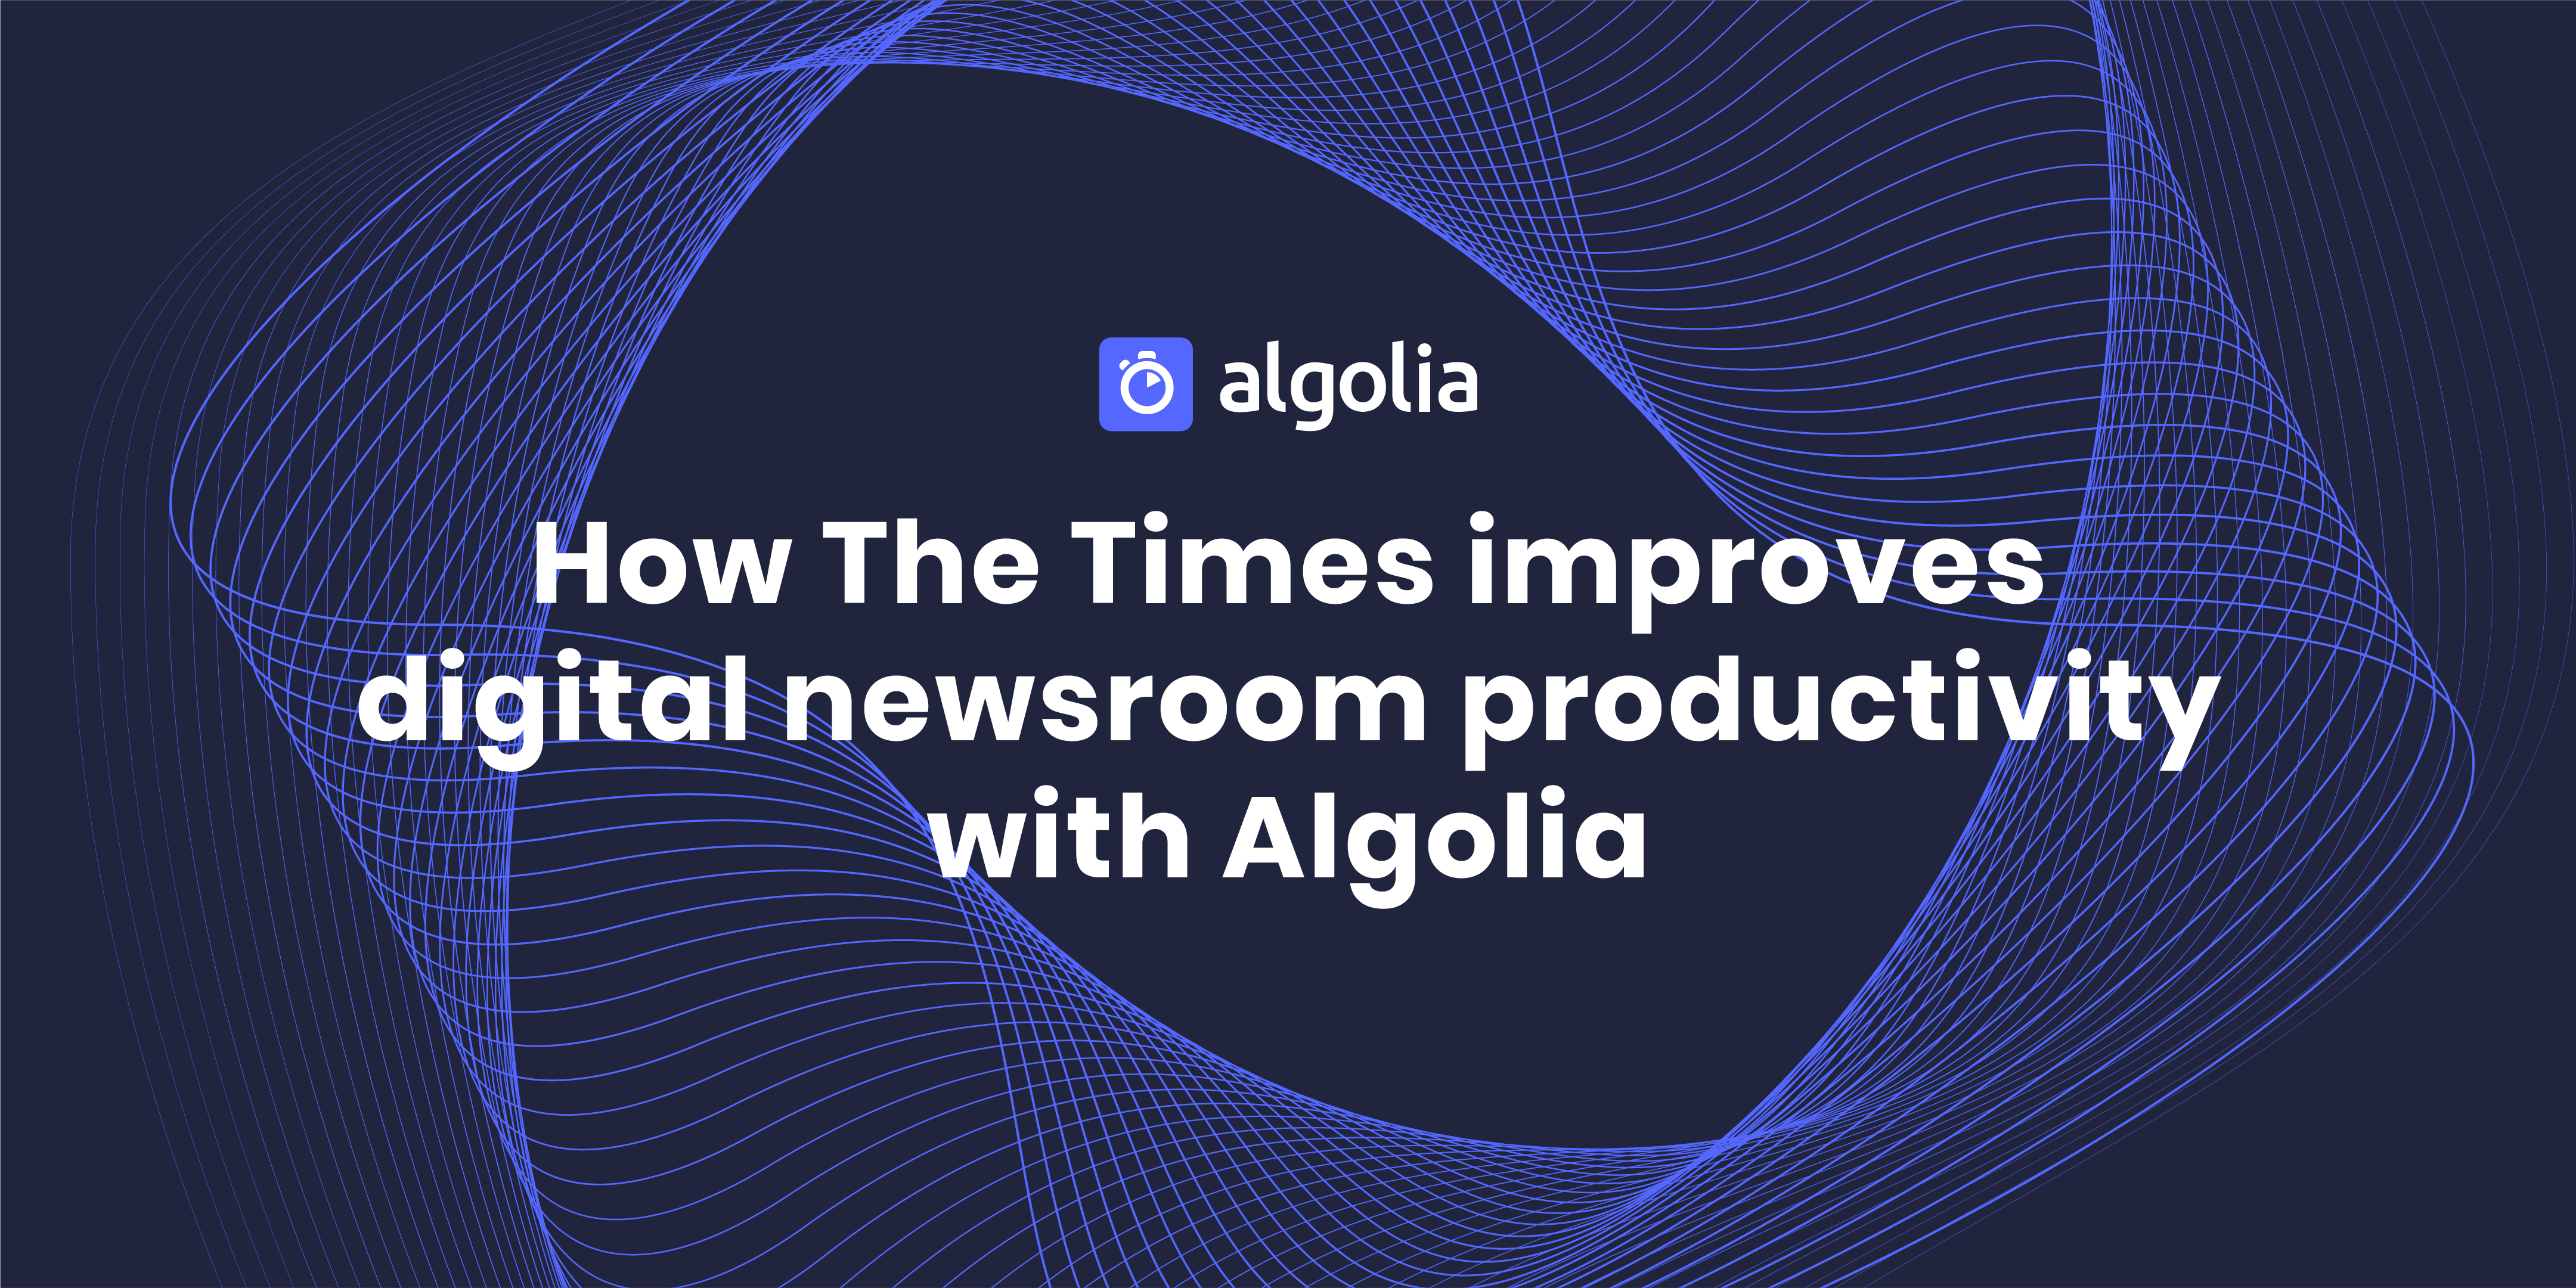 Matt Taylor showcases The Times' fast, easy-to-use digital newsroom with Algolia